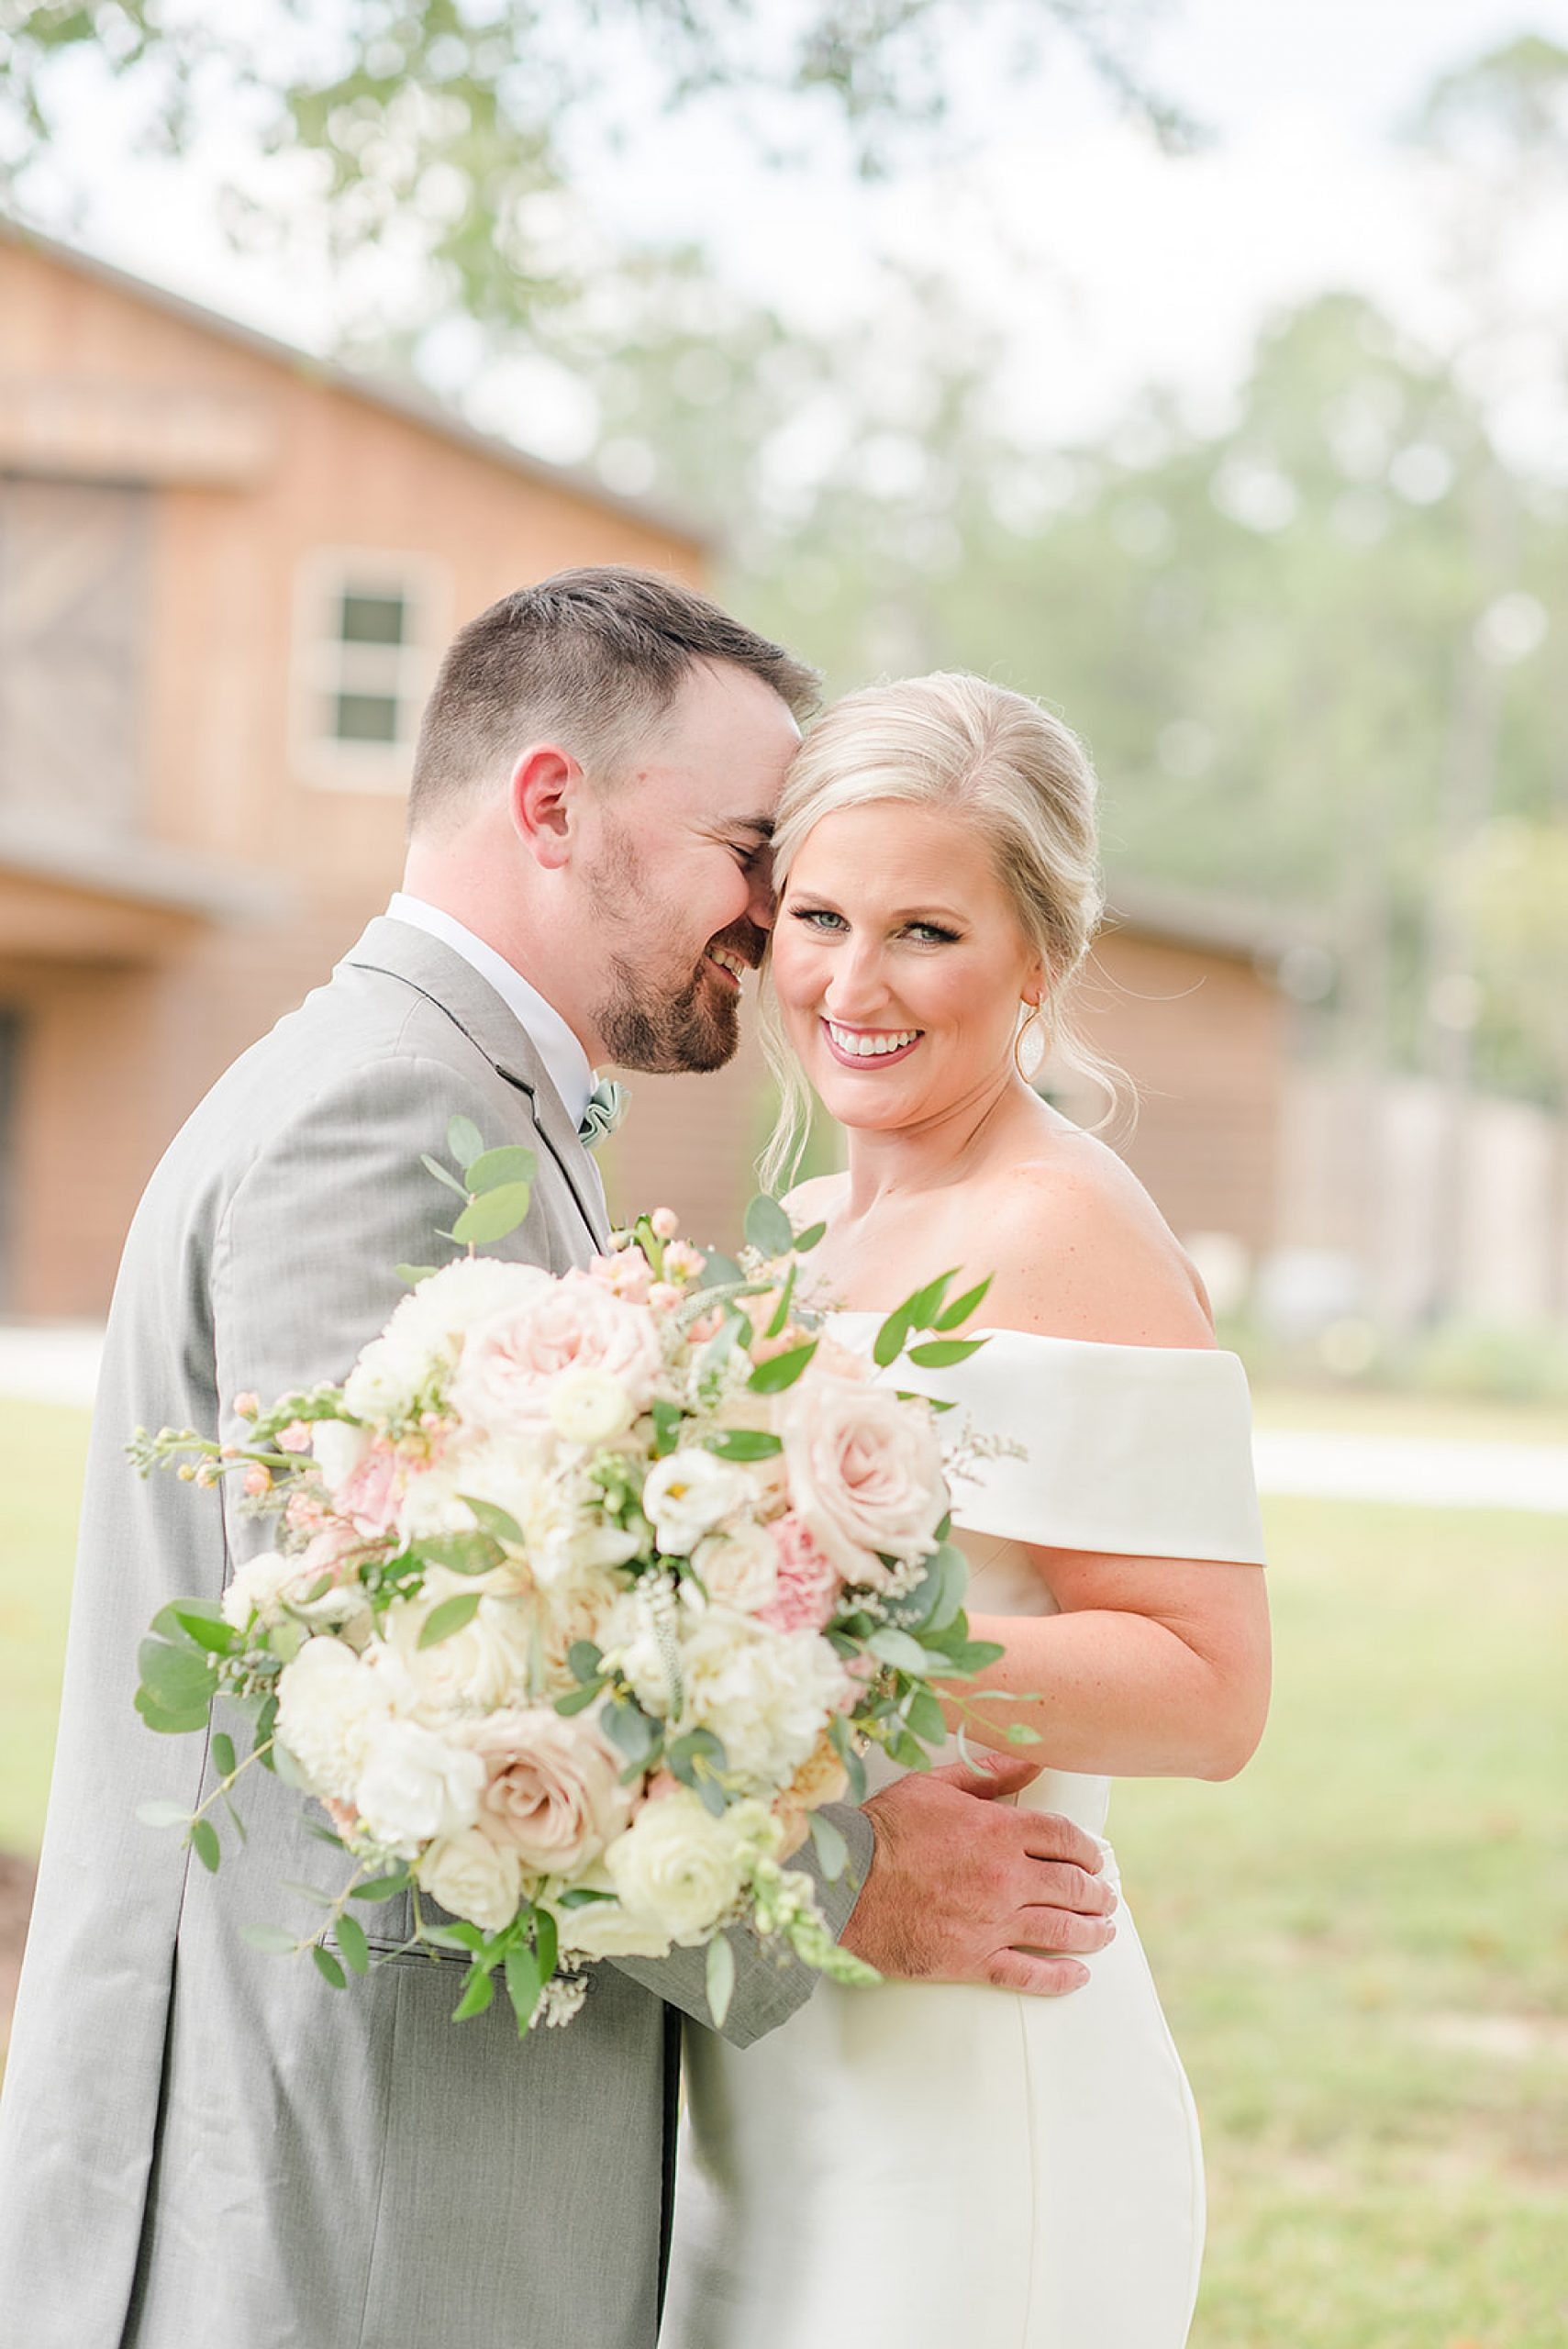 groom nuzzles the bride during portraits at Izenstone